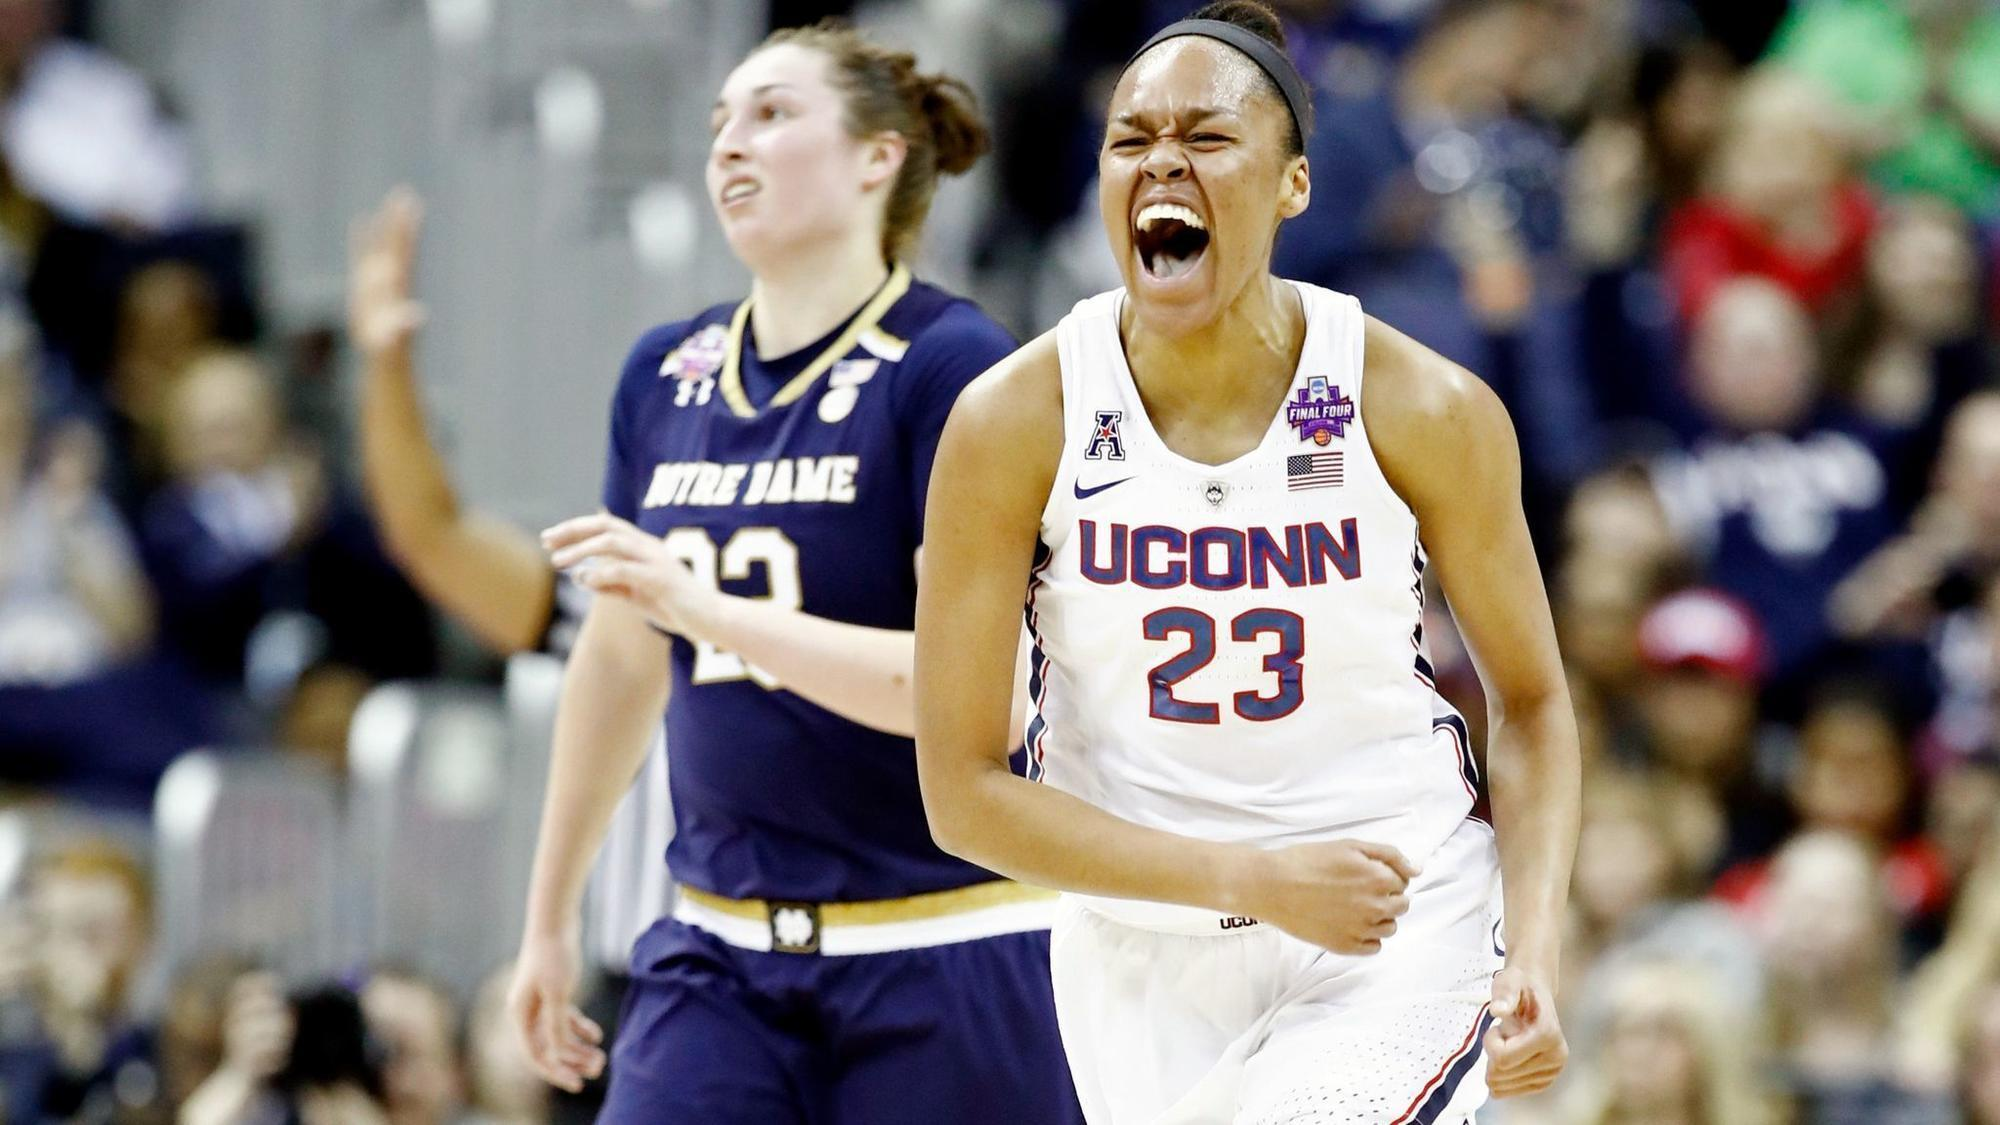 Dallas Wings drafted UConn's Azura Stevens sixth in the 2018 WNBA Draft (Getty Images)